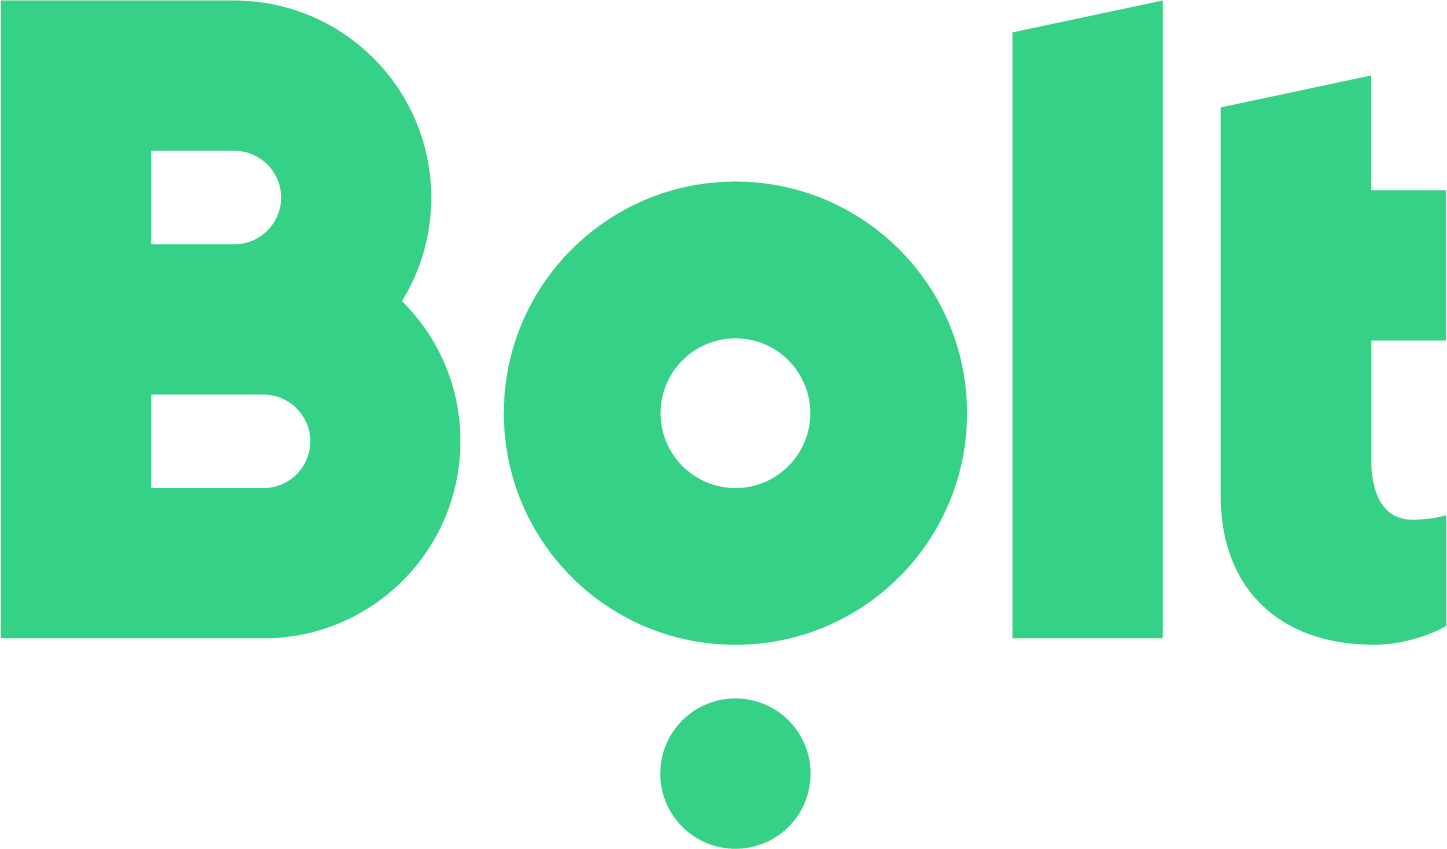 bolt taxi logo green